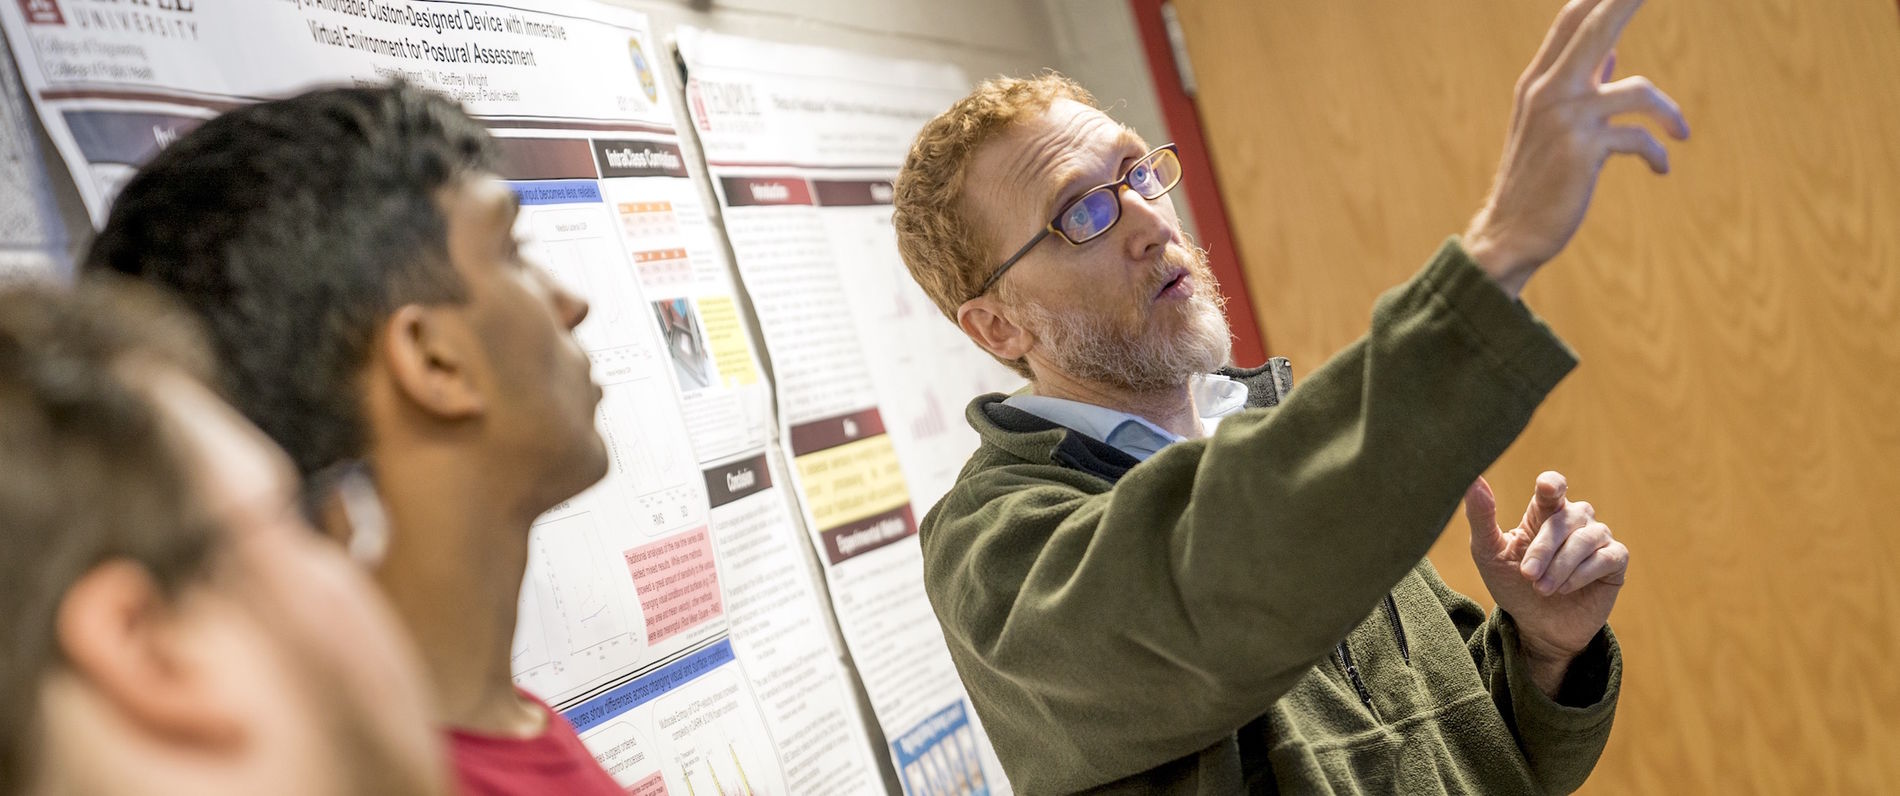 Professor Geoff Wright pointing at a research poster